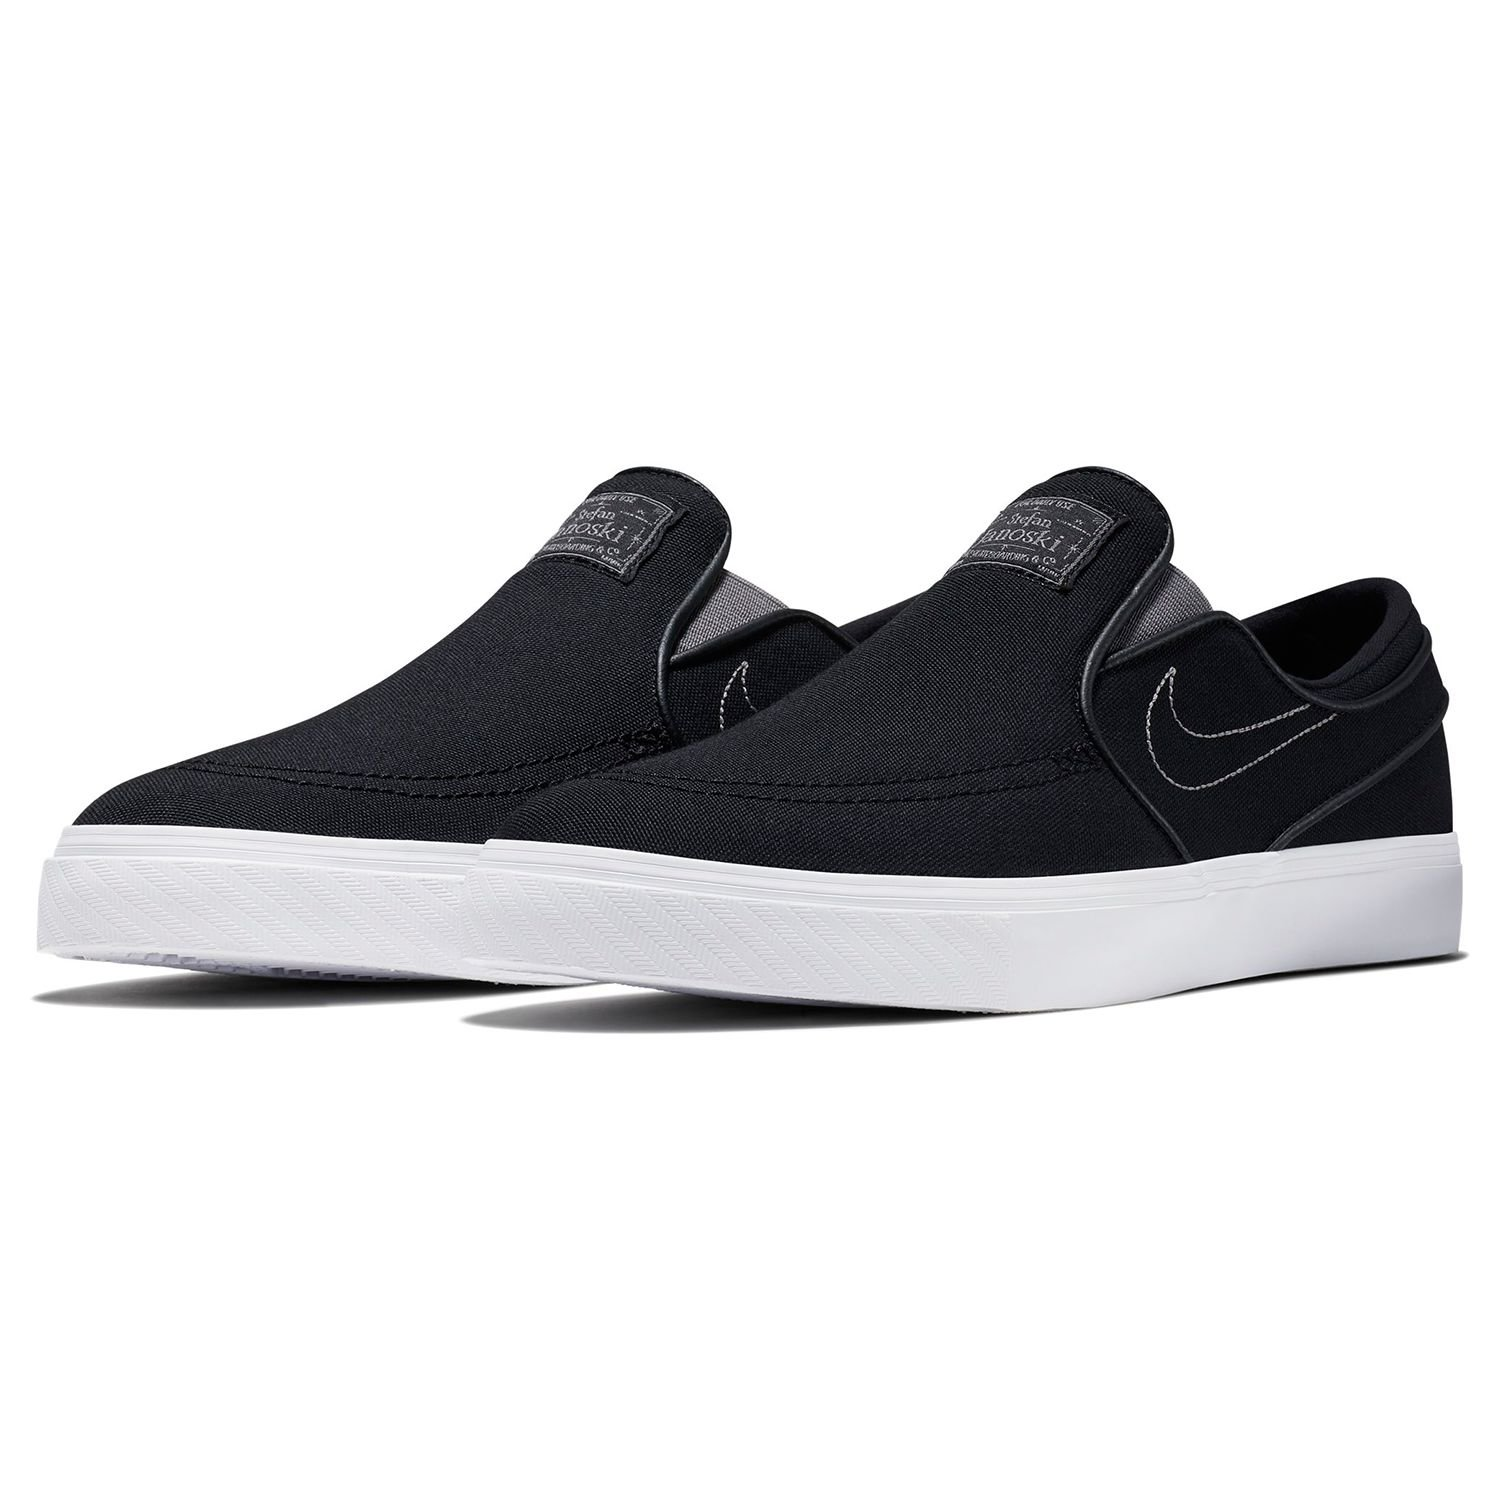 Men's/Women's NIKE NIKE Men's/Women's SB Zoom Stefan Janoski Slip Canvas Ideal gift for all occasions Used in durability General product HG21696 bb92bb